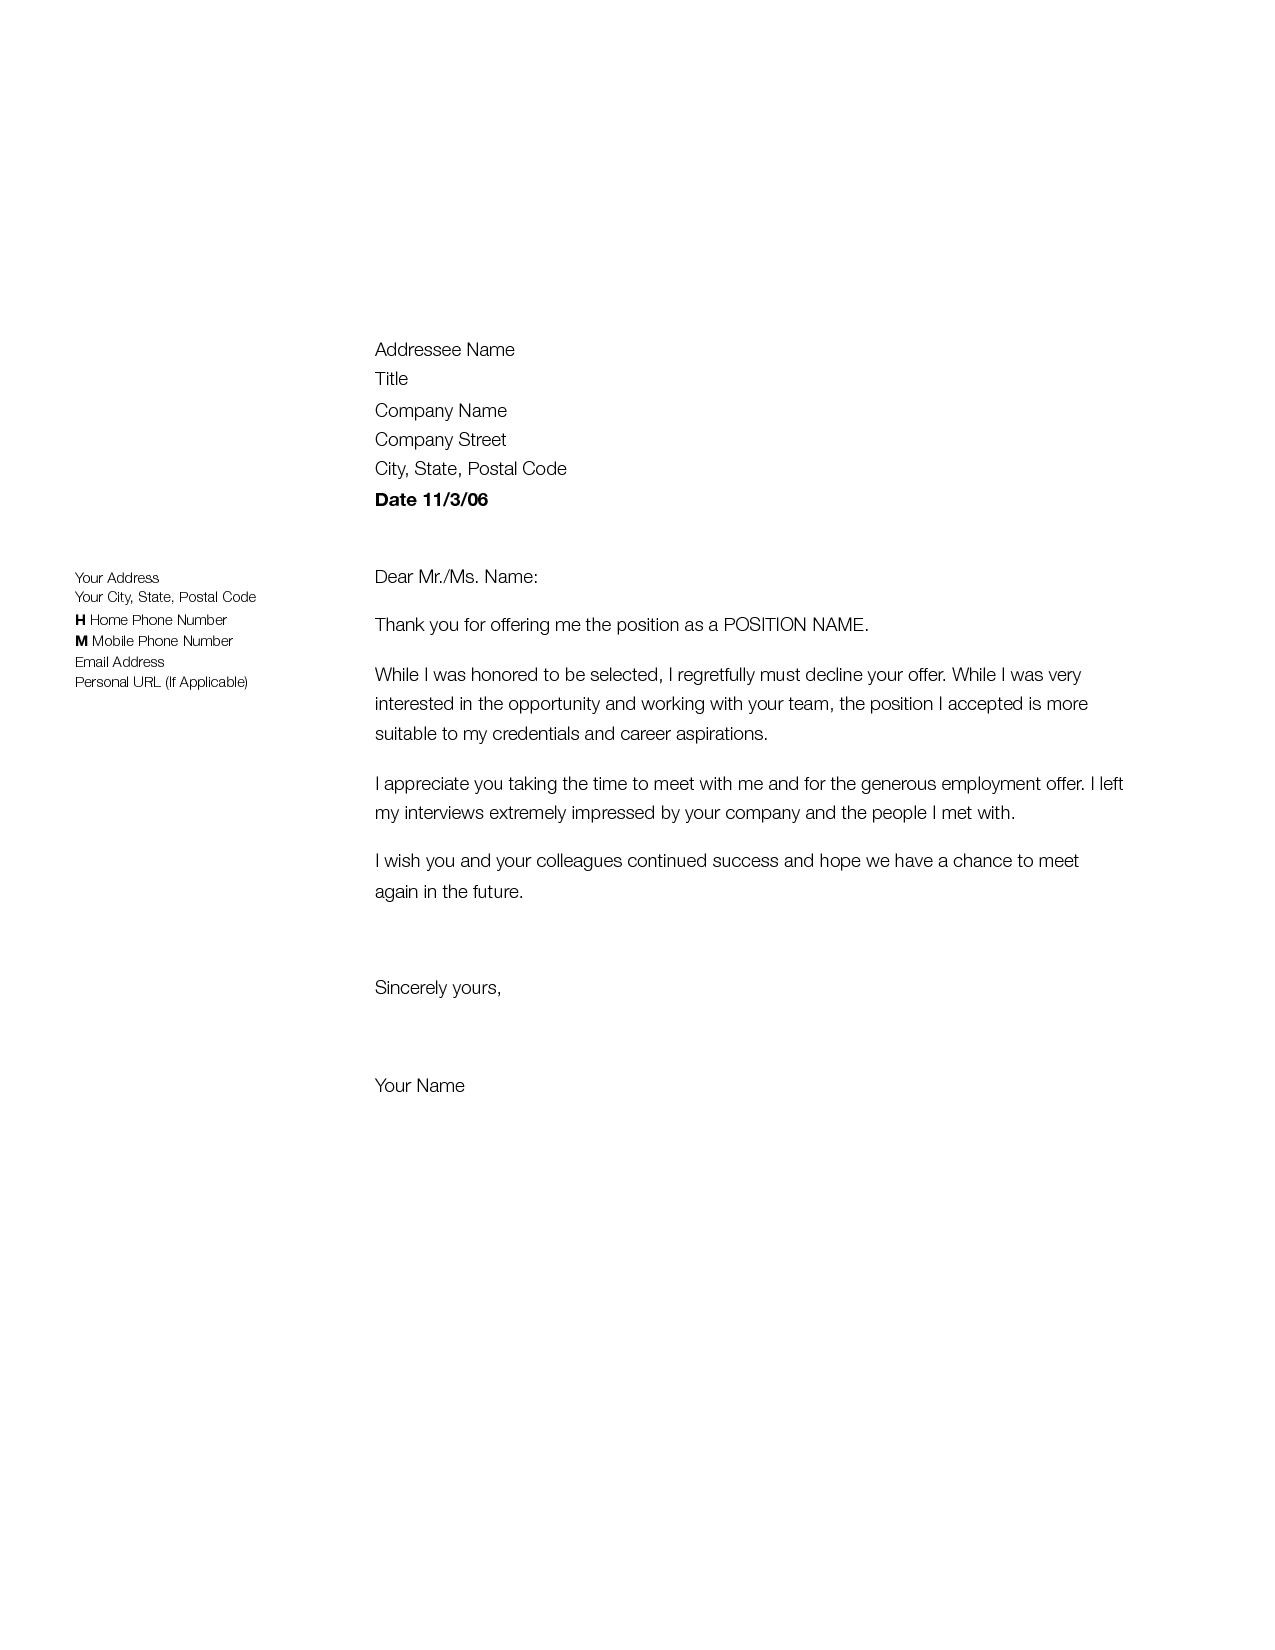 denial letter for job offer apology letter  letter